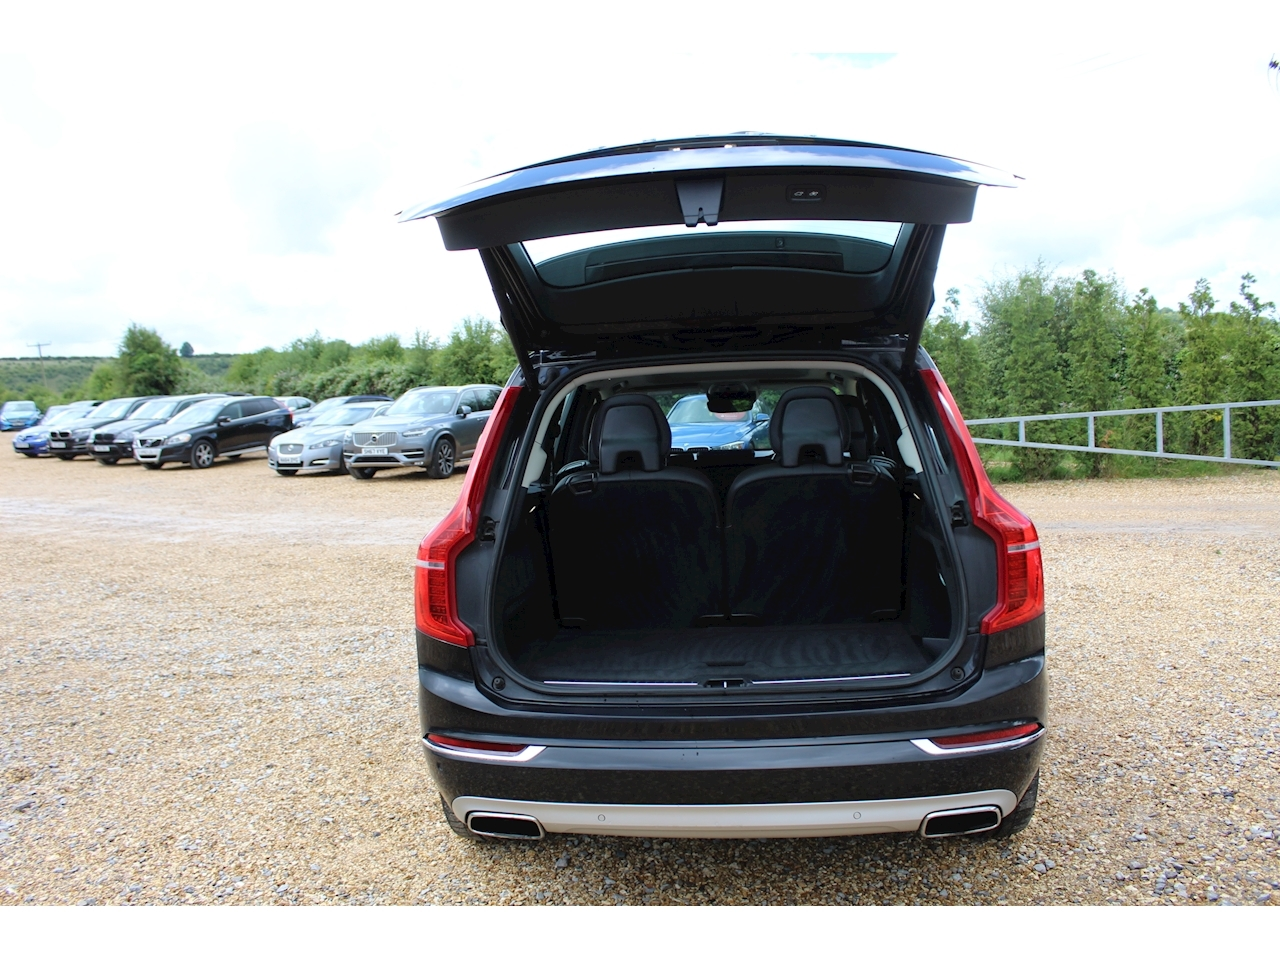 Volvo Xc90 T8 Twin Engine Inscription Estate 2.0 Automatic Petrol/Electric